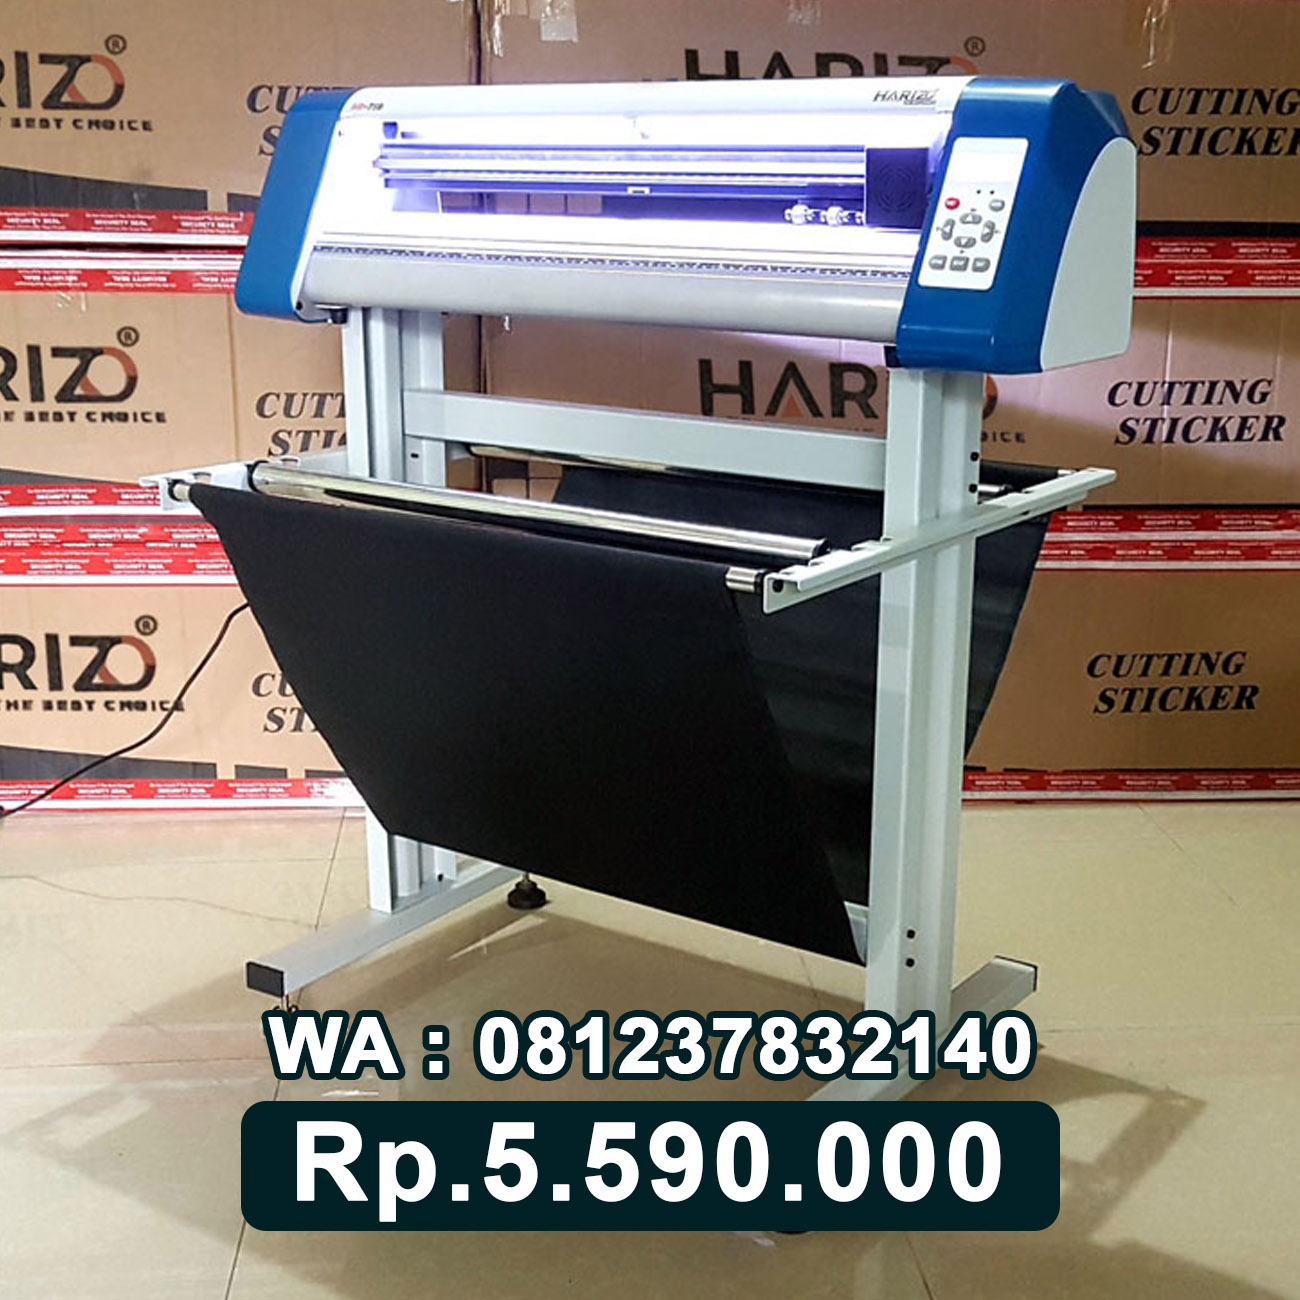 JUAL MESIN CUTTING STICKER HARIZO 720 Tabanan